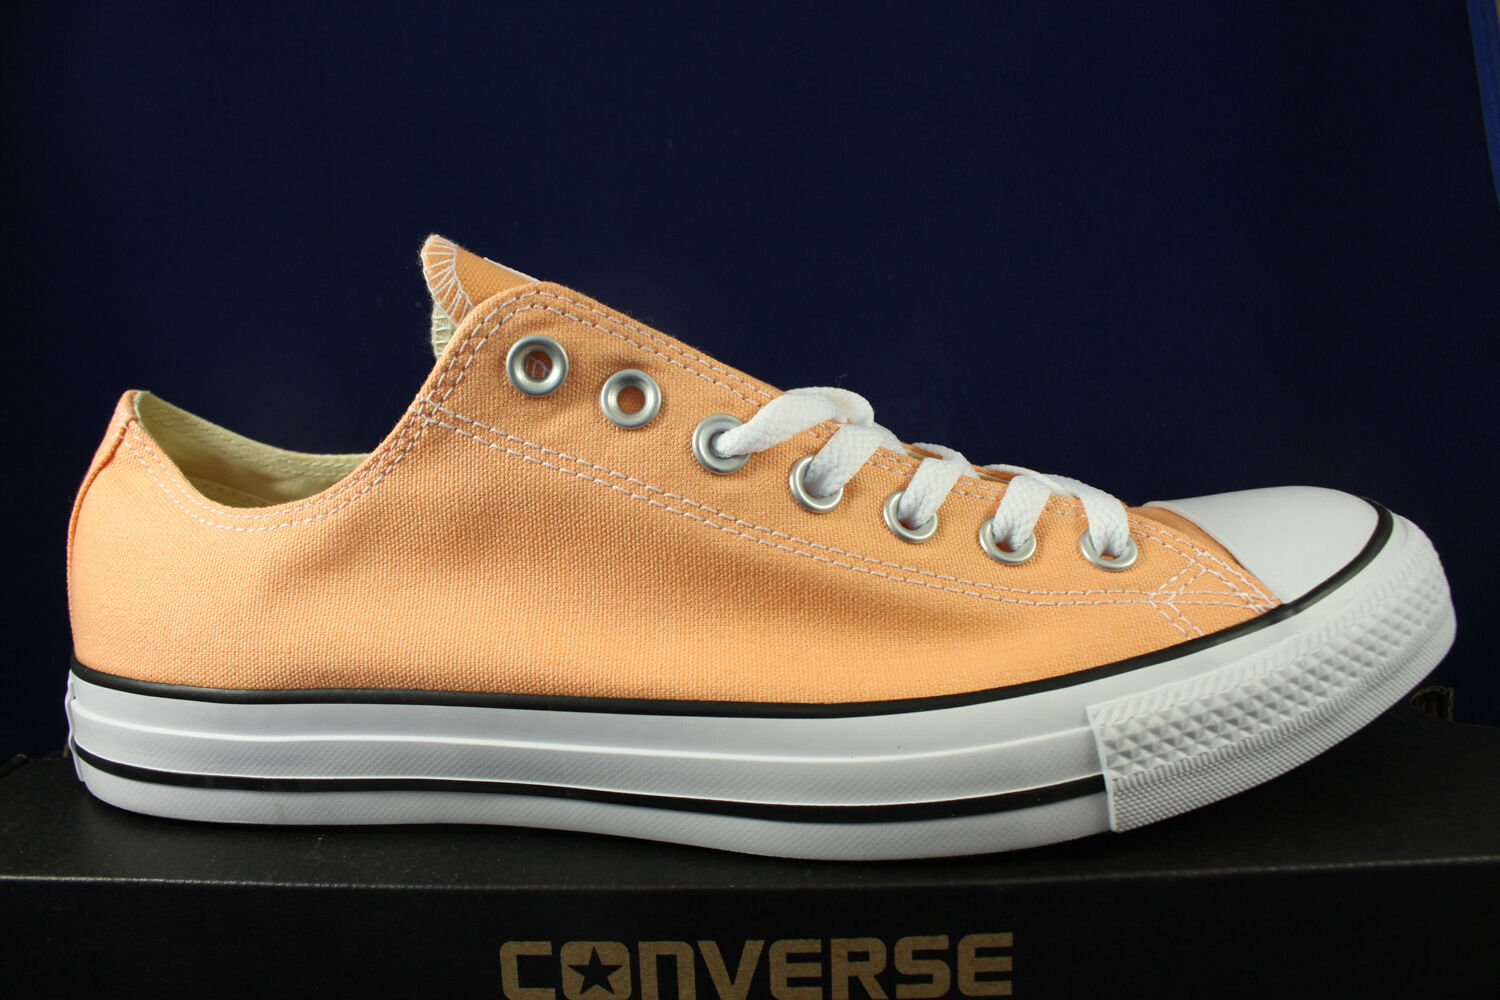 CONVERSE CHUCK TAYLOR ALL STAR CT AS OX SUNSET GLOW 155573F SZ 9